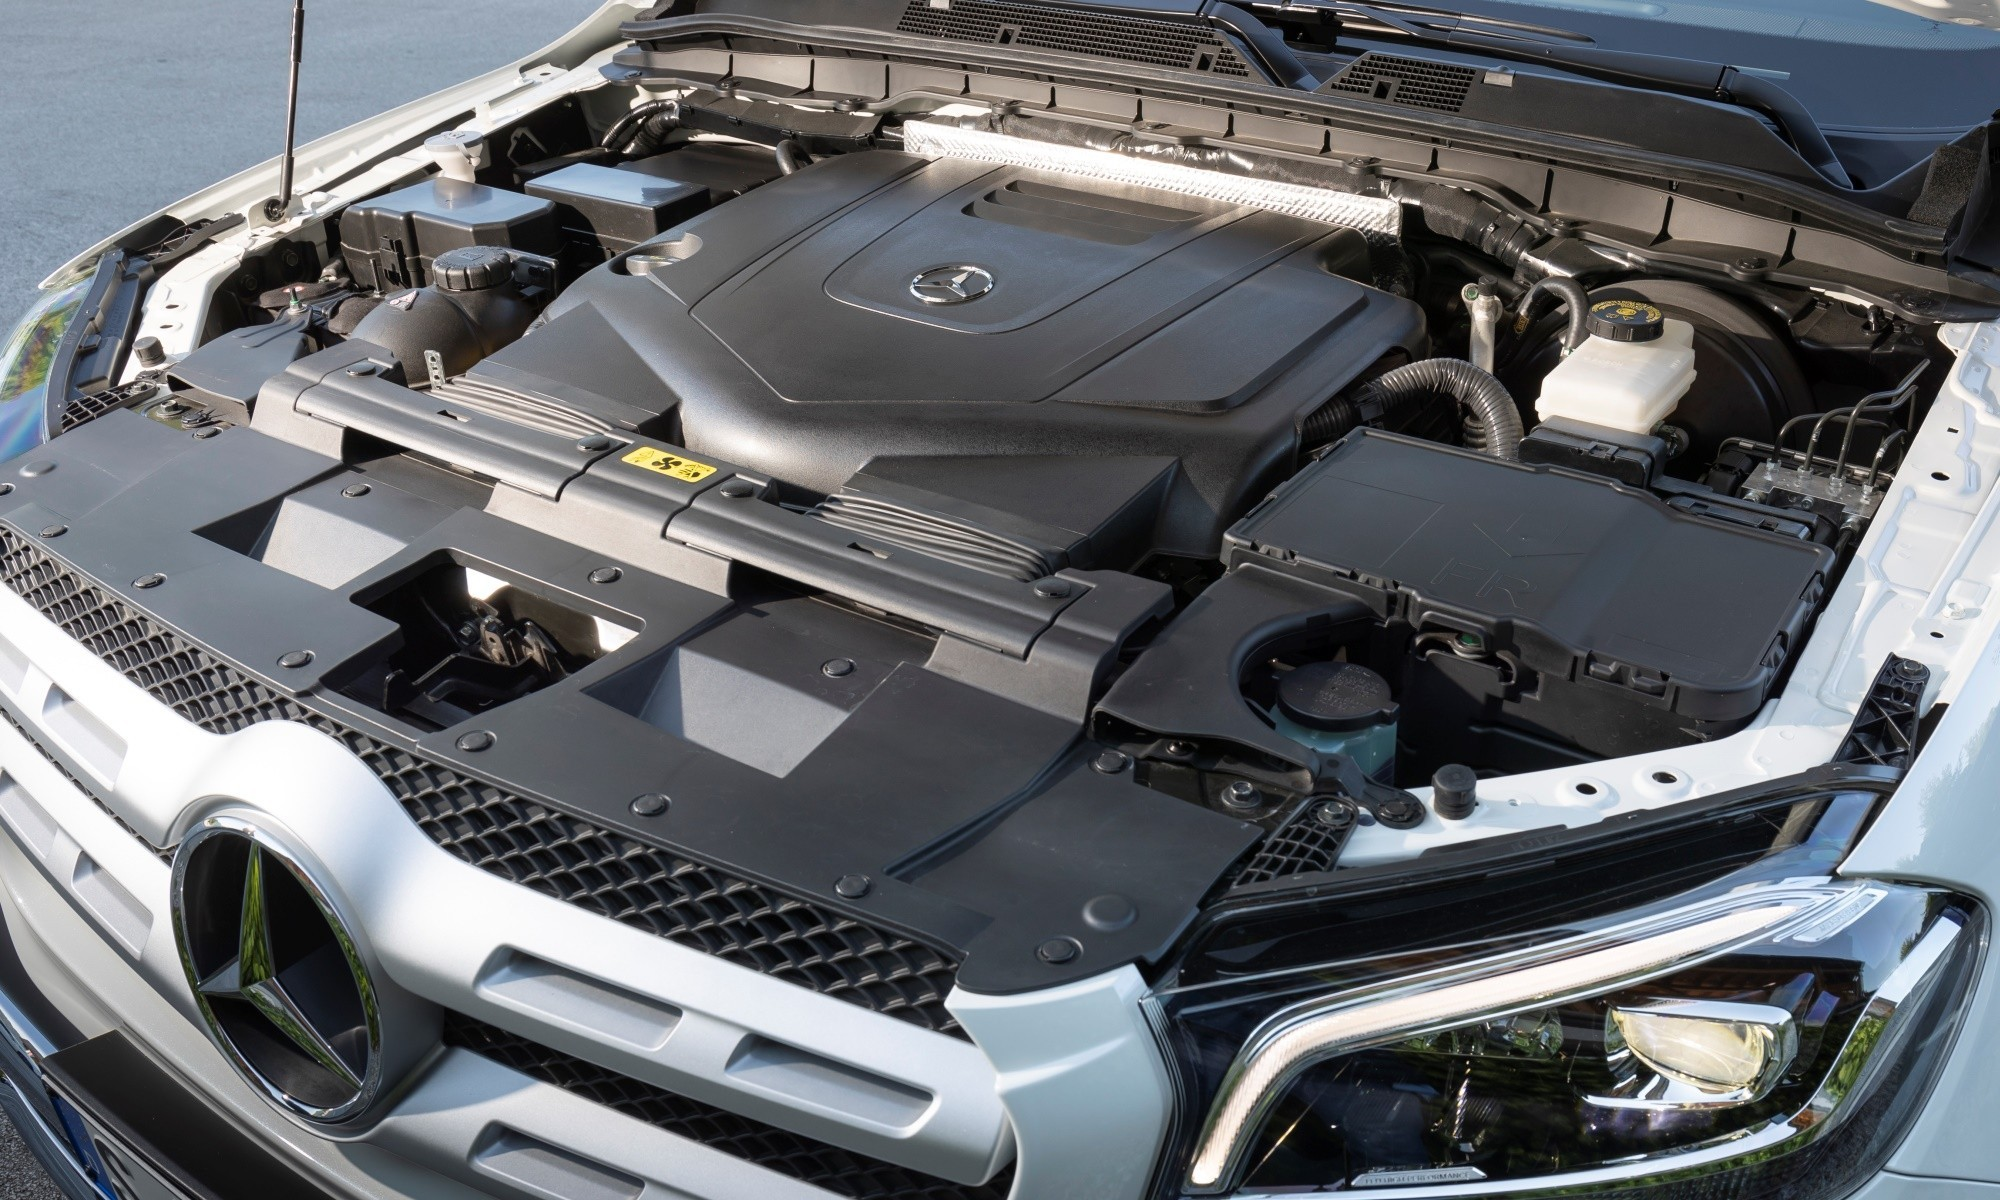 Mercedes-Benz X350d engine